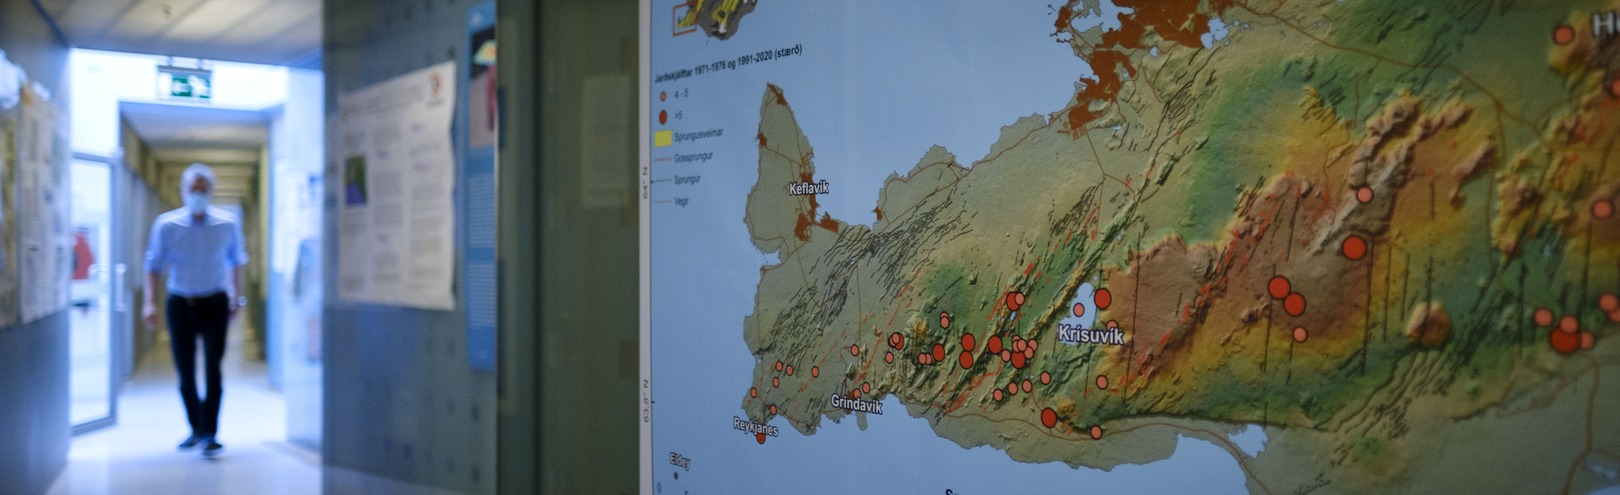 The eruption site is the best classroom - video - Available at University of Iceland